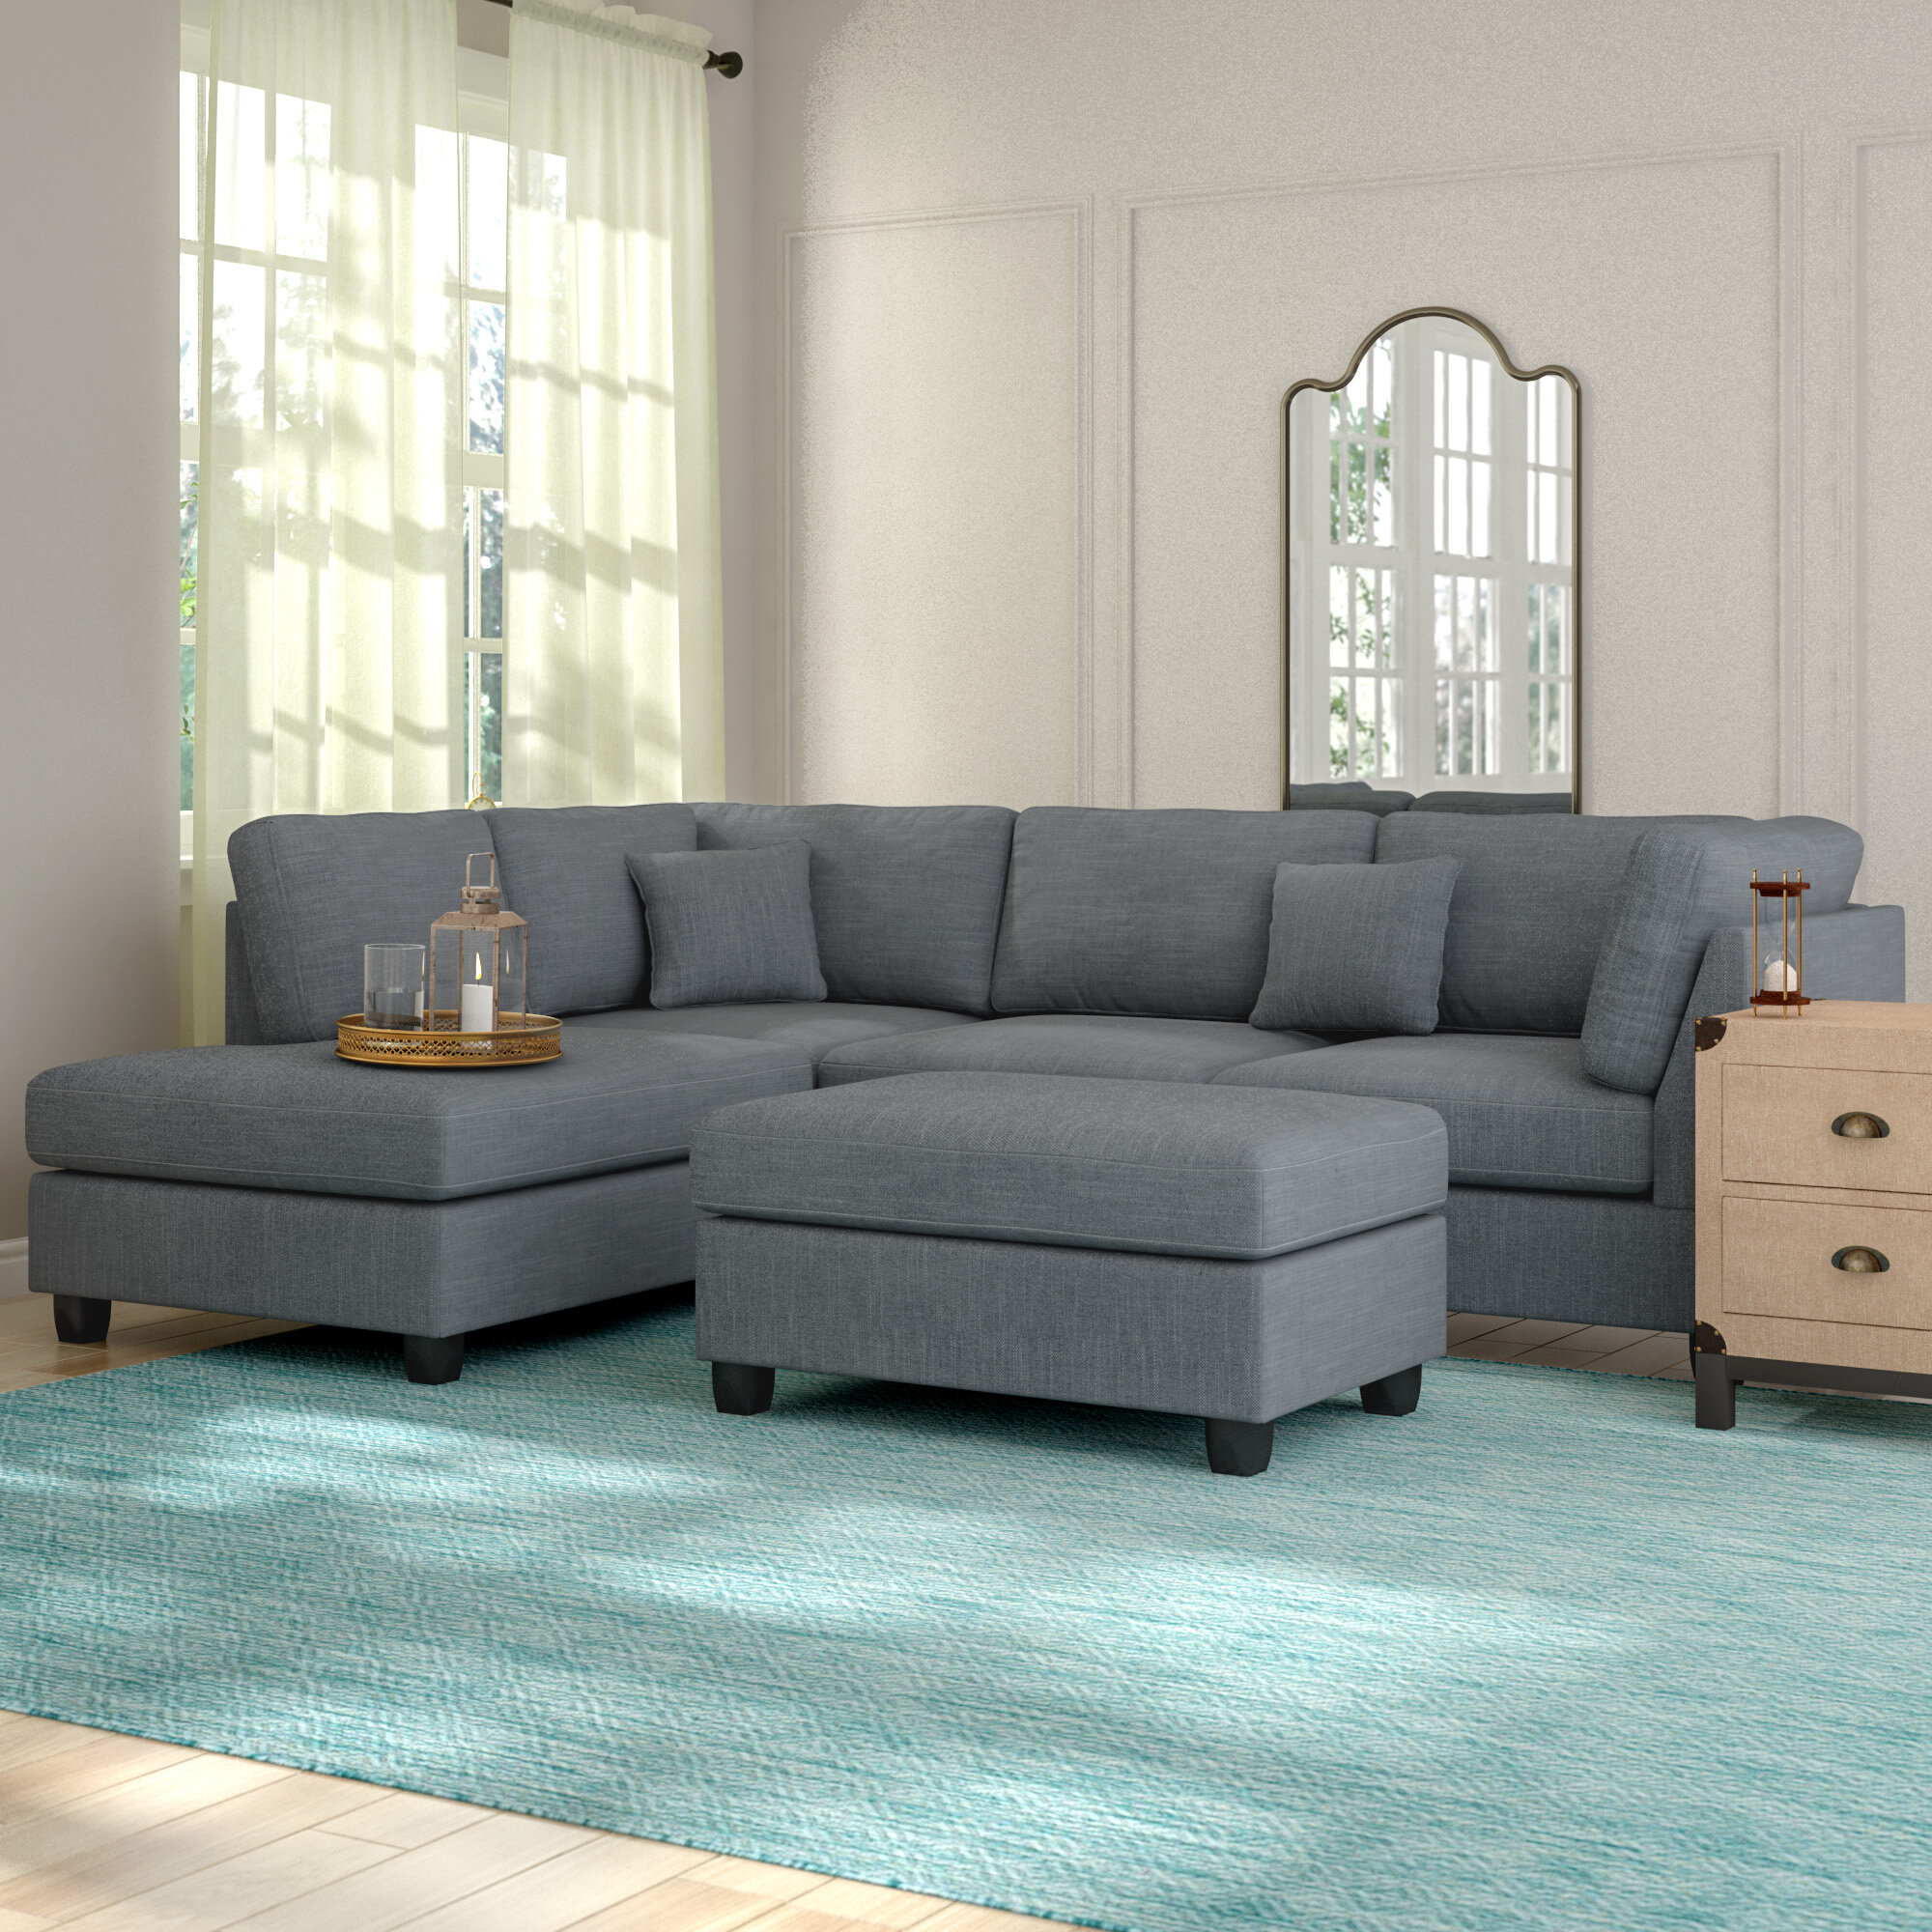 collections lawson seats chaise sectional jackson sofa item total with furniture wayside couch sofas lss two five